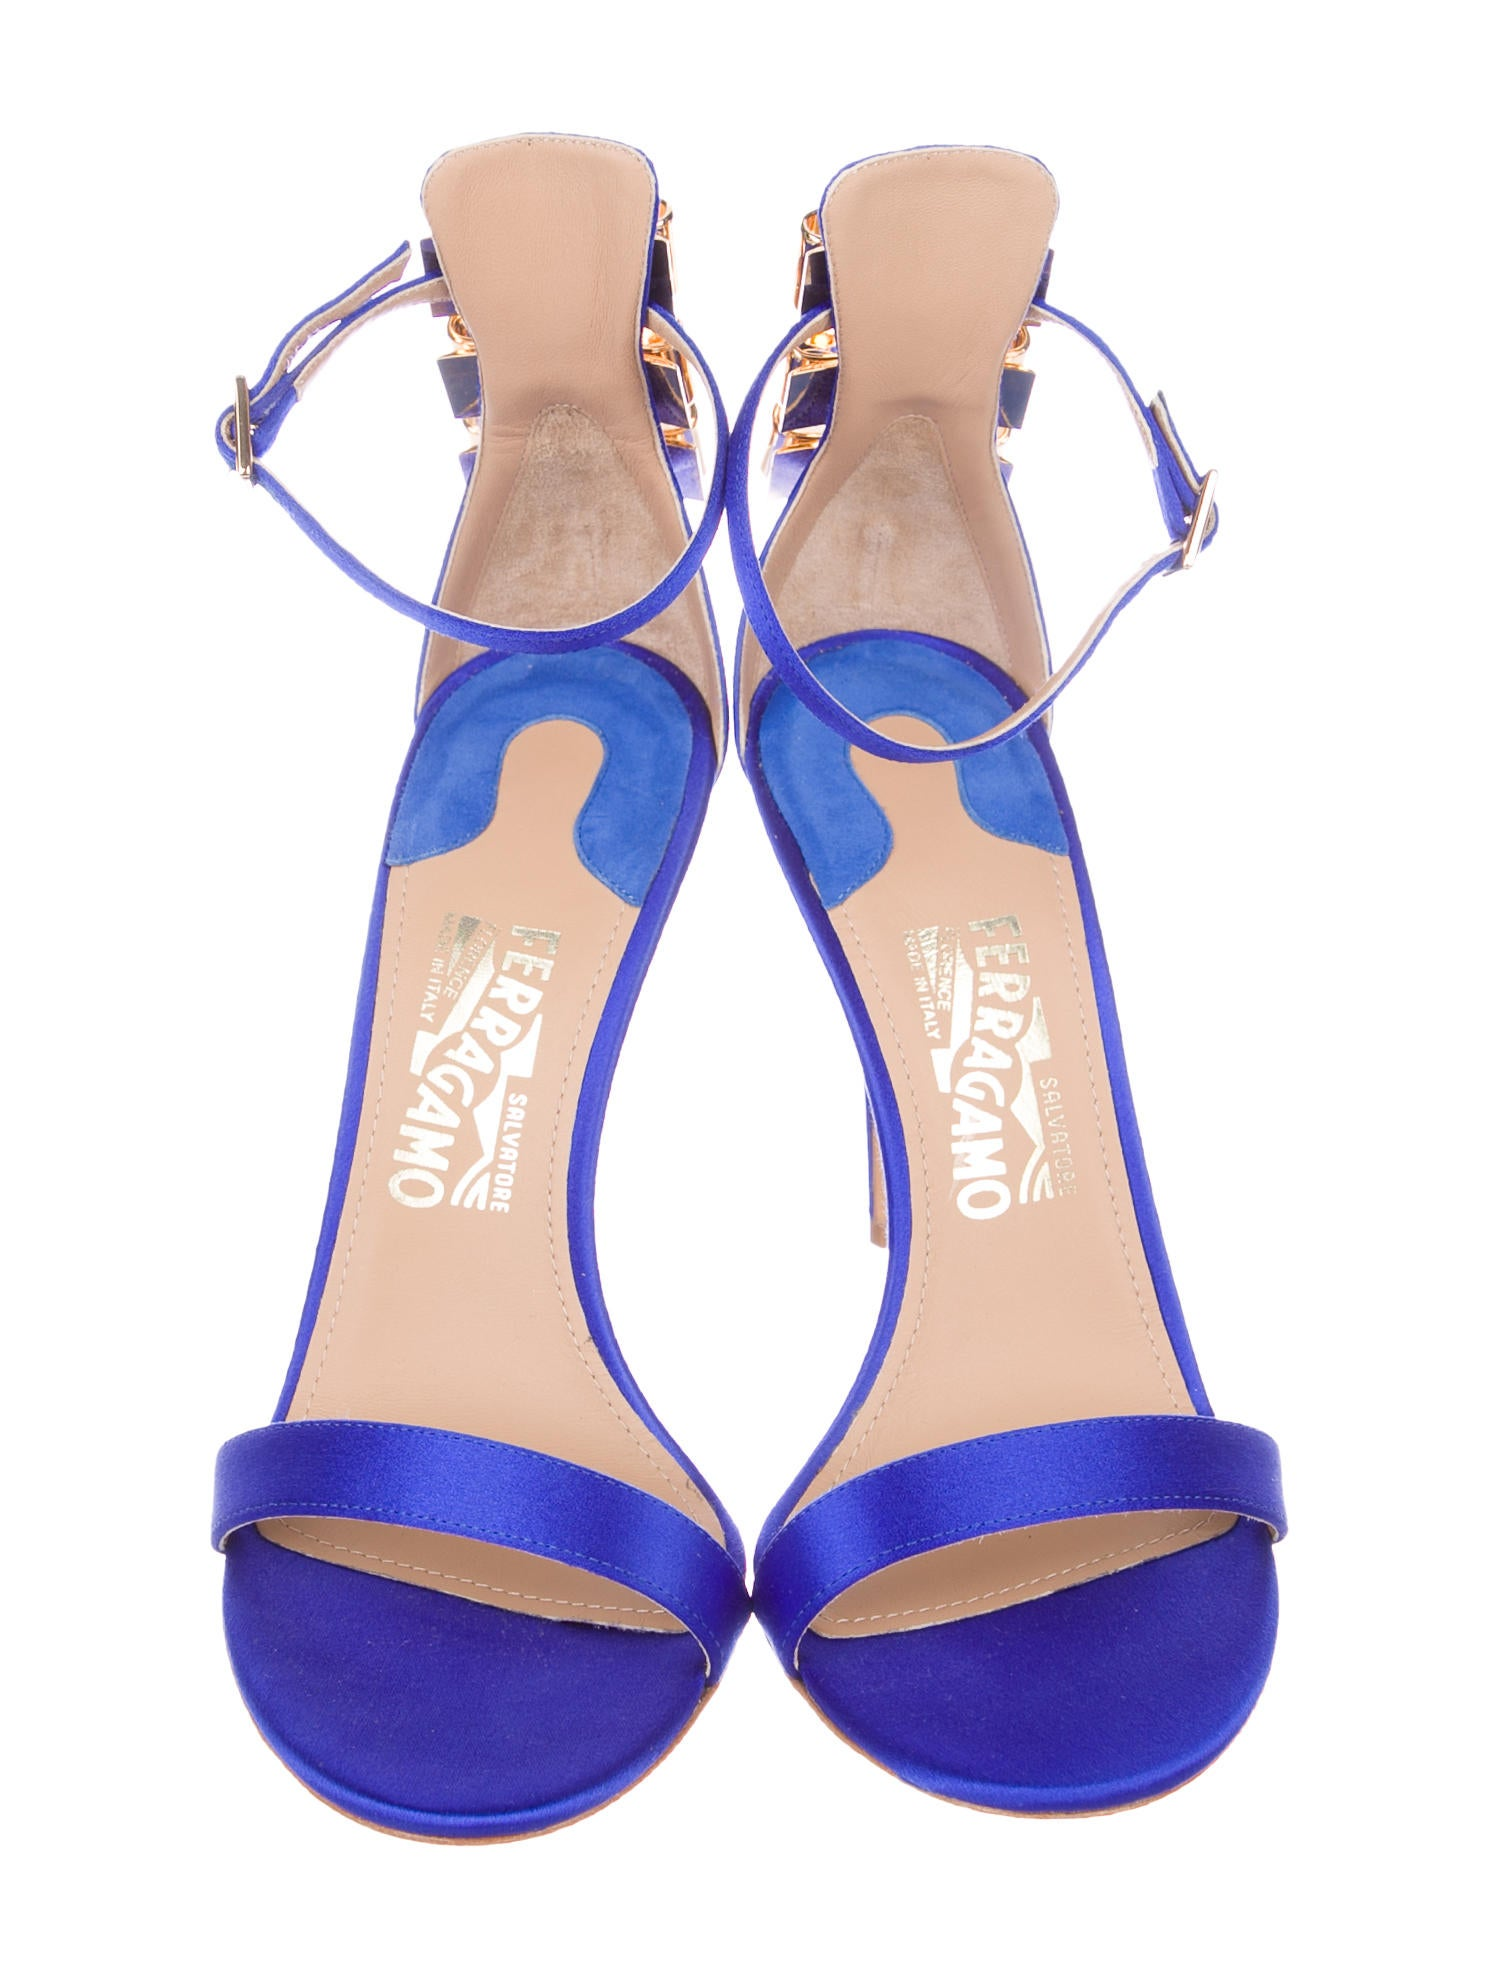 Salvatore Ferragamo Satin Angie Sandals w/ Tags free shipping latest collections many kinds of sale online free shipping prices cheap sale best place i5K2V